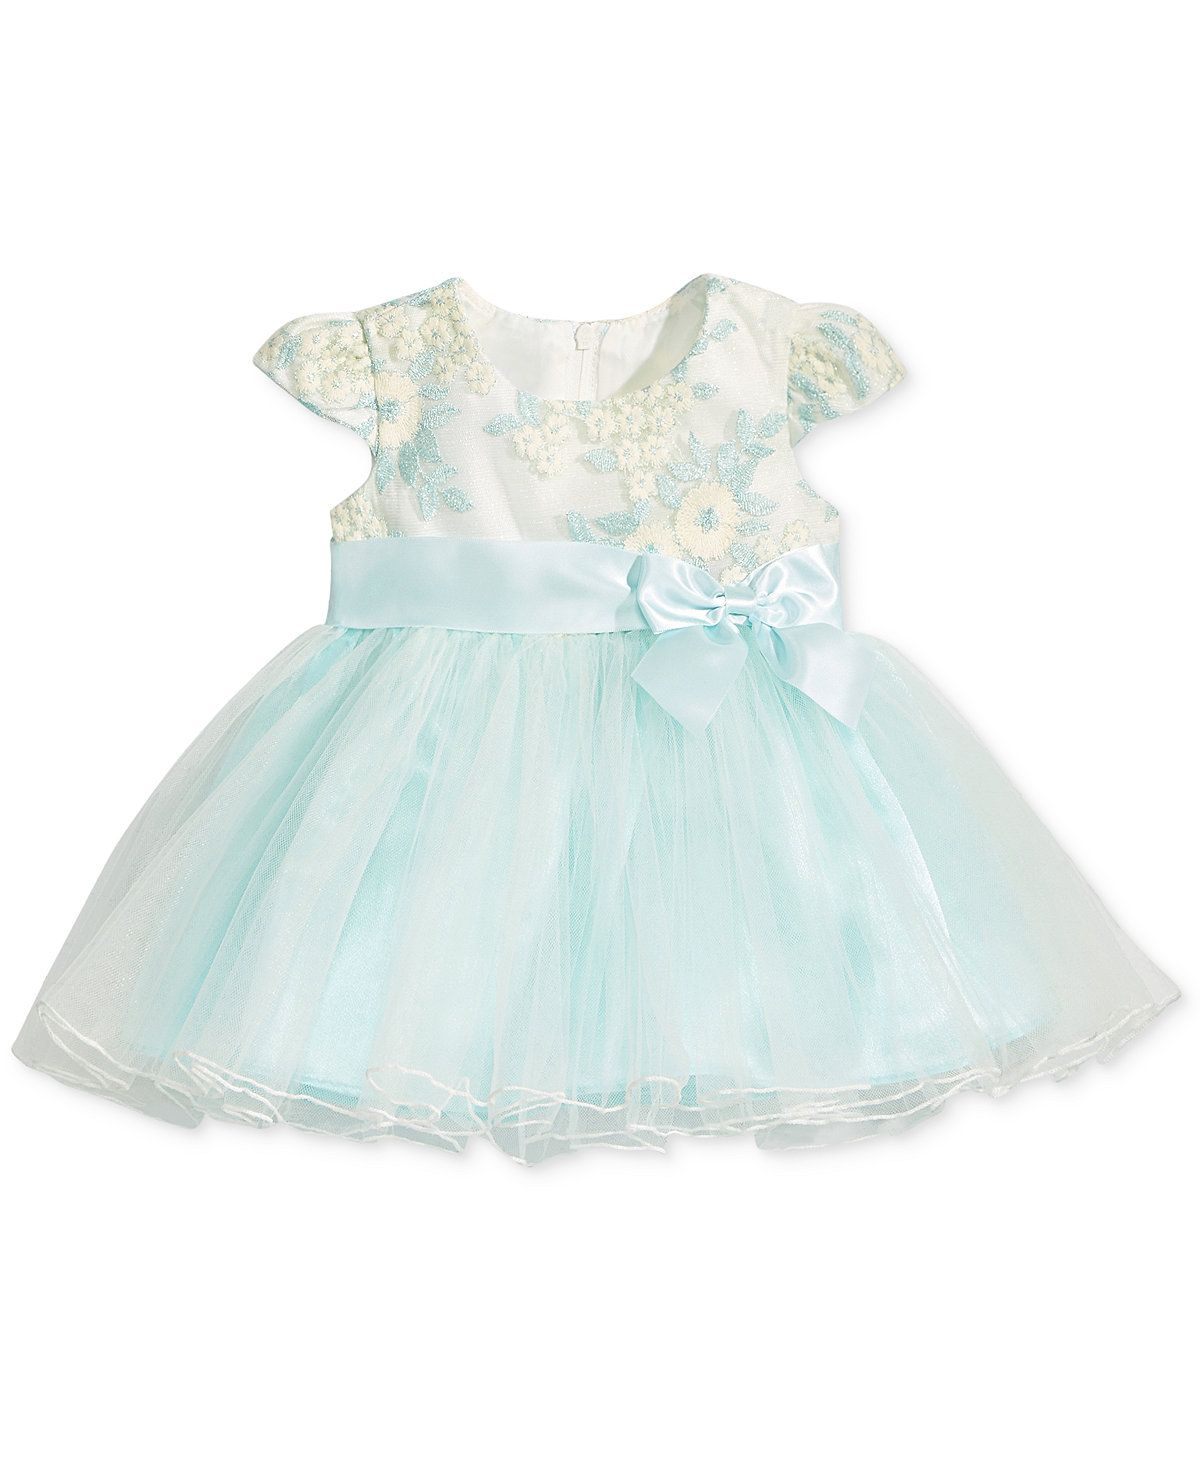 Bonnie Baby Embroidered Ballerina Dress Baby Girls 0 24 Months